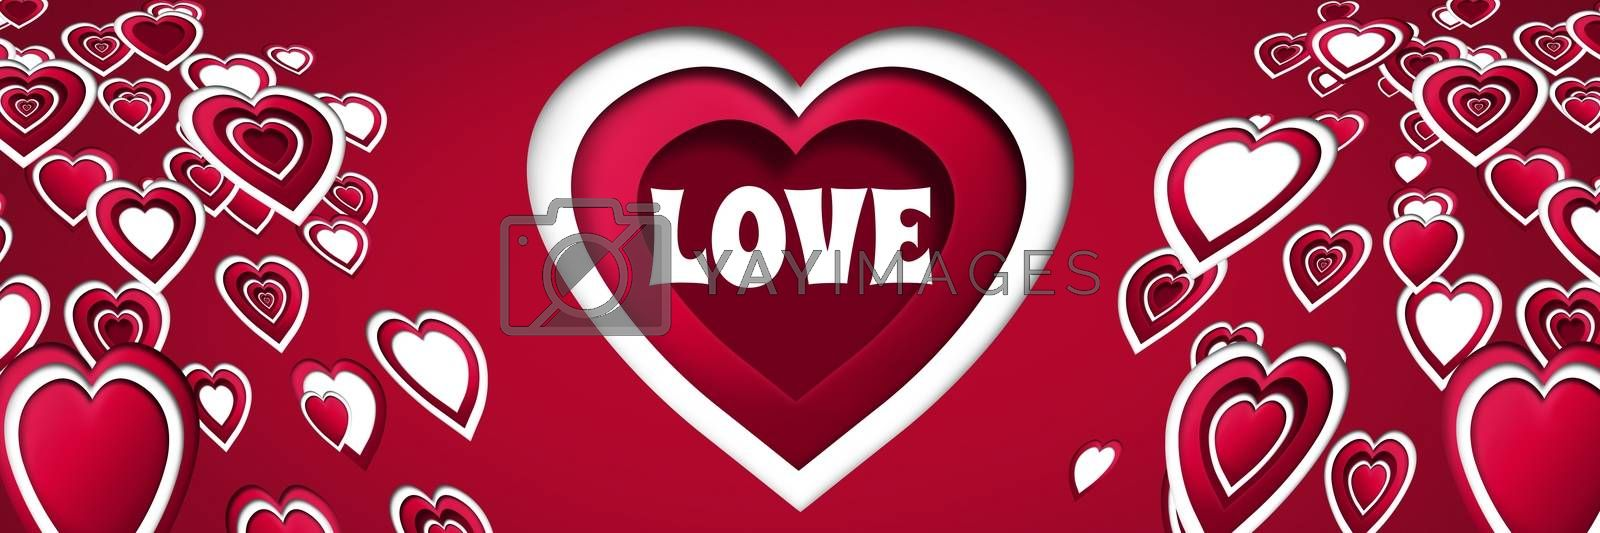 Digital composite of Love text and Layered Valentines hearts